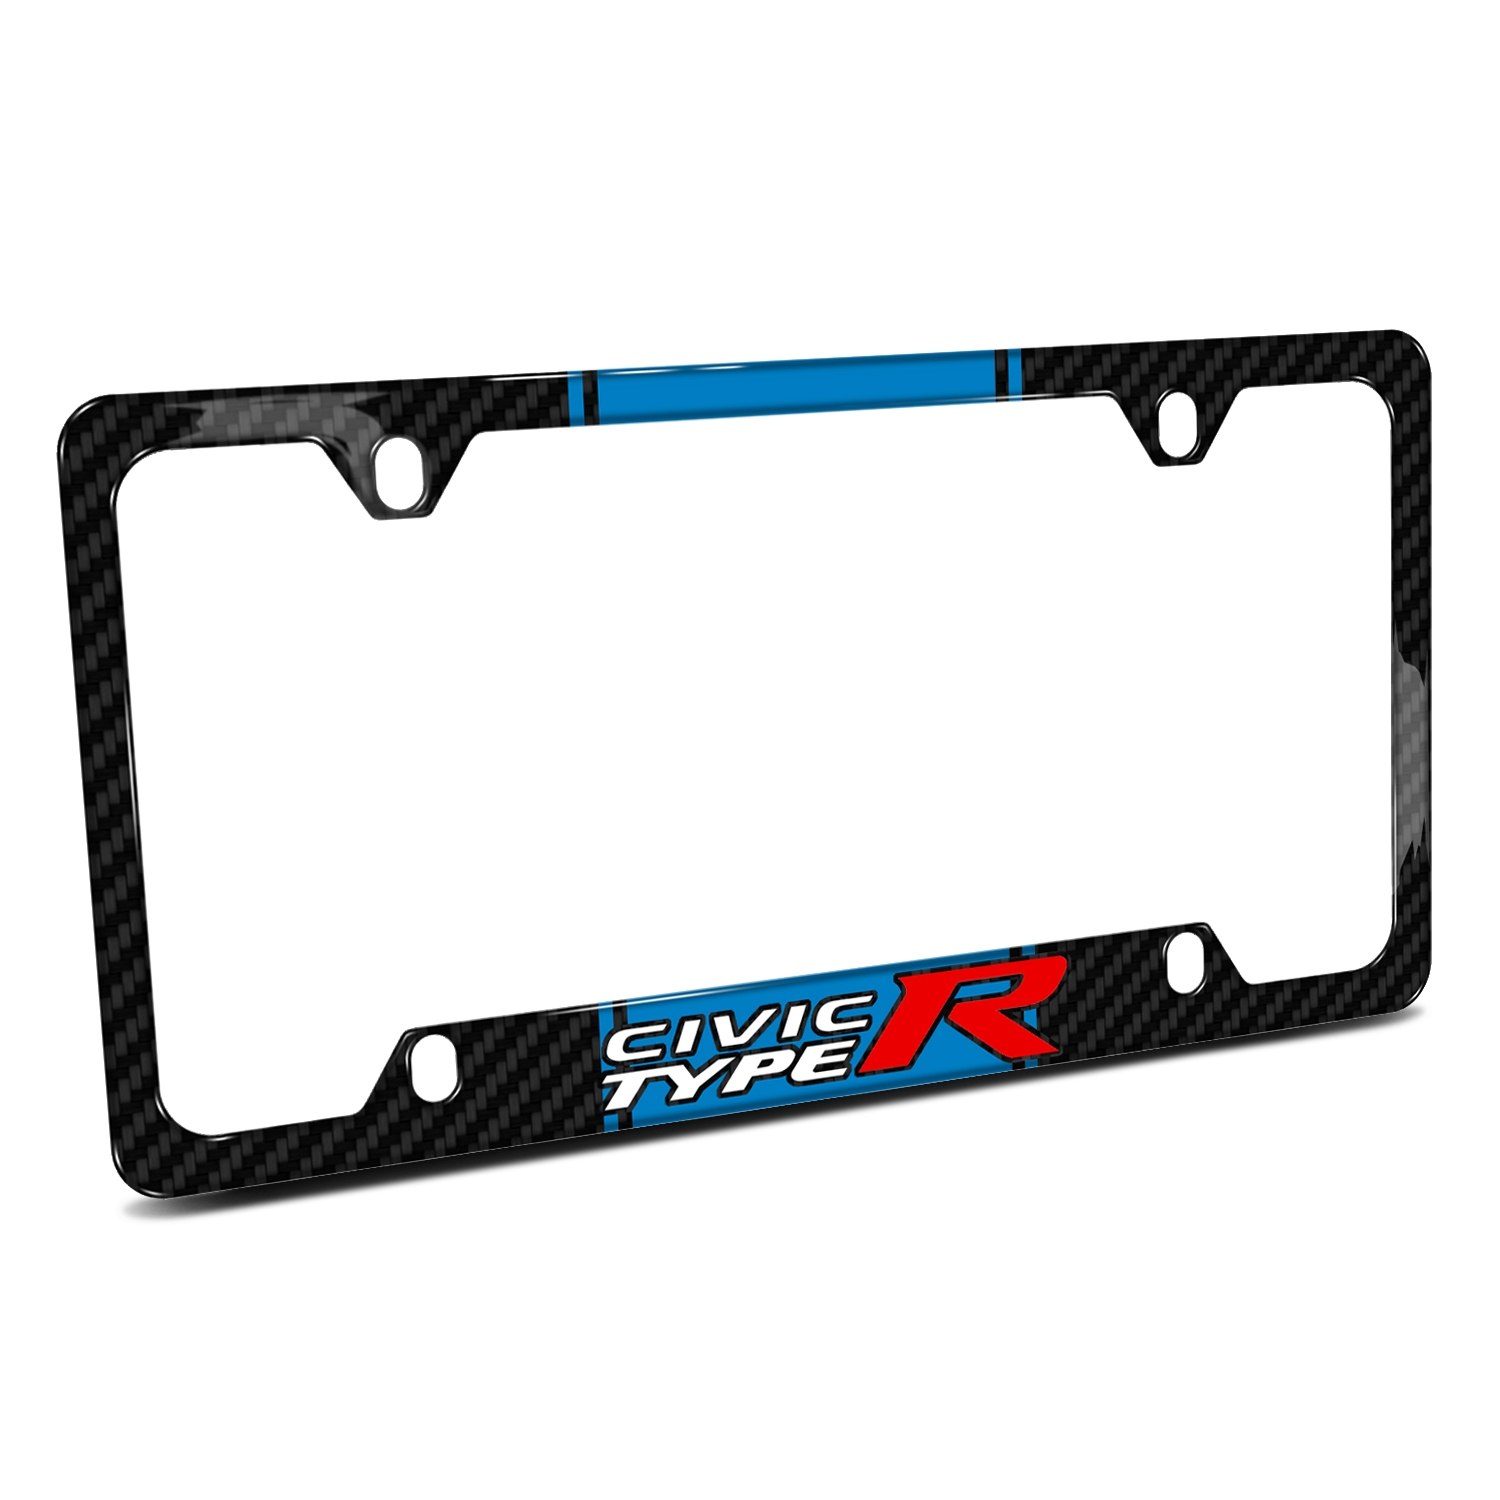 Honda Civic Type R Blue Racing Stripe Black Real Carbon Fiber 50 States License Plate Frame